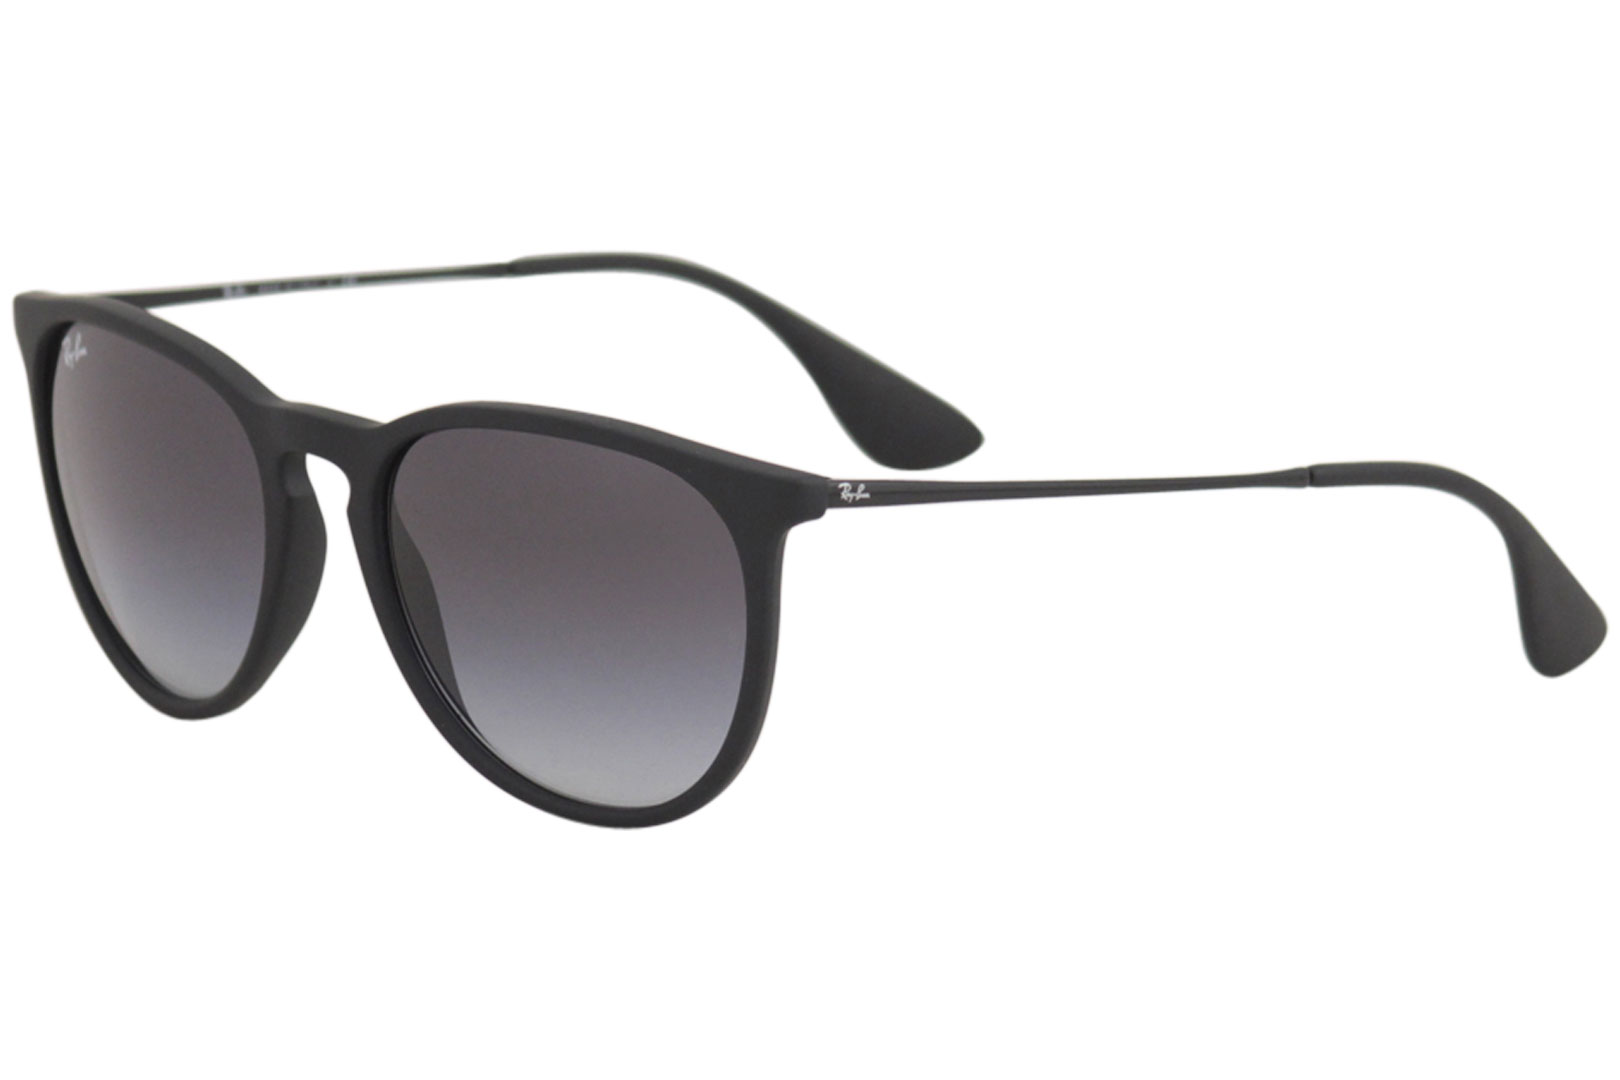 09883a6a2c7 Ray Ban Erika RB4171 RB 4171 622 8G Rubber Black Square RayBan ...